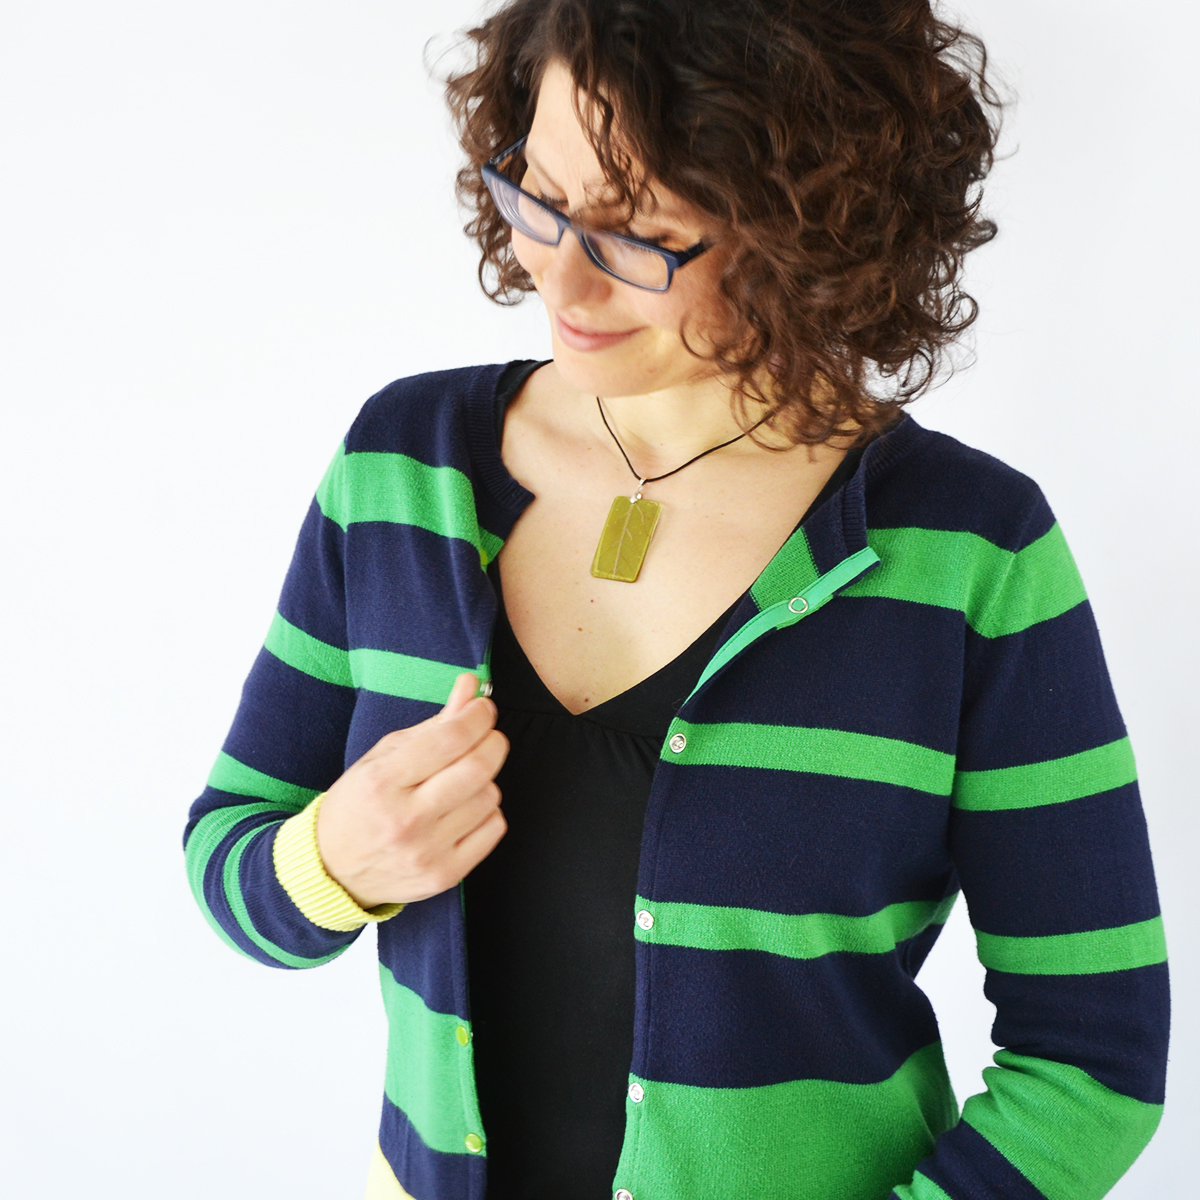 Cardigans are fantastic for layering clothing during in-between seasons. Learn how to refashion a sweater into a cardigan with one simple cut and two strips of fabric in just 10 minutes! Super easy!